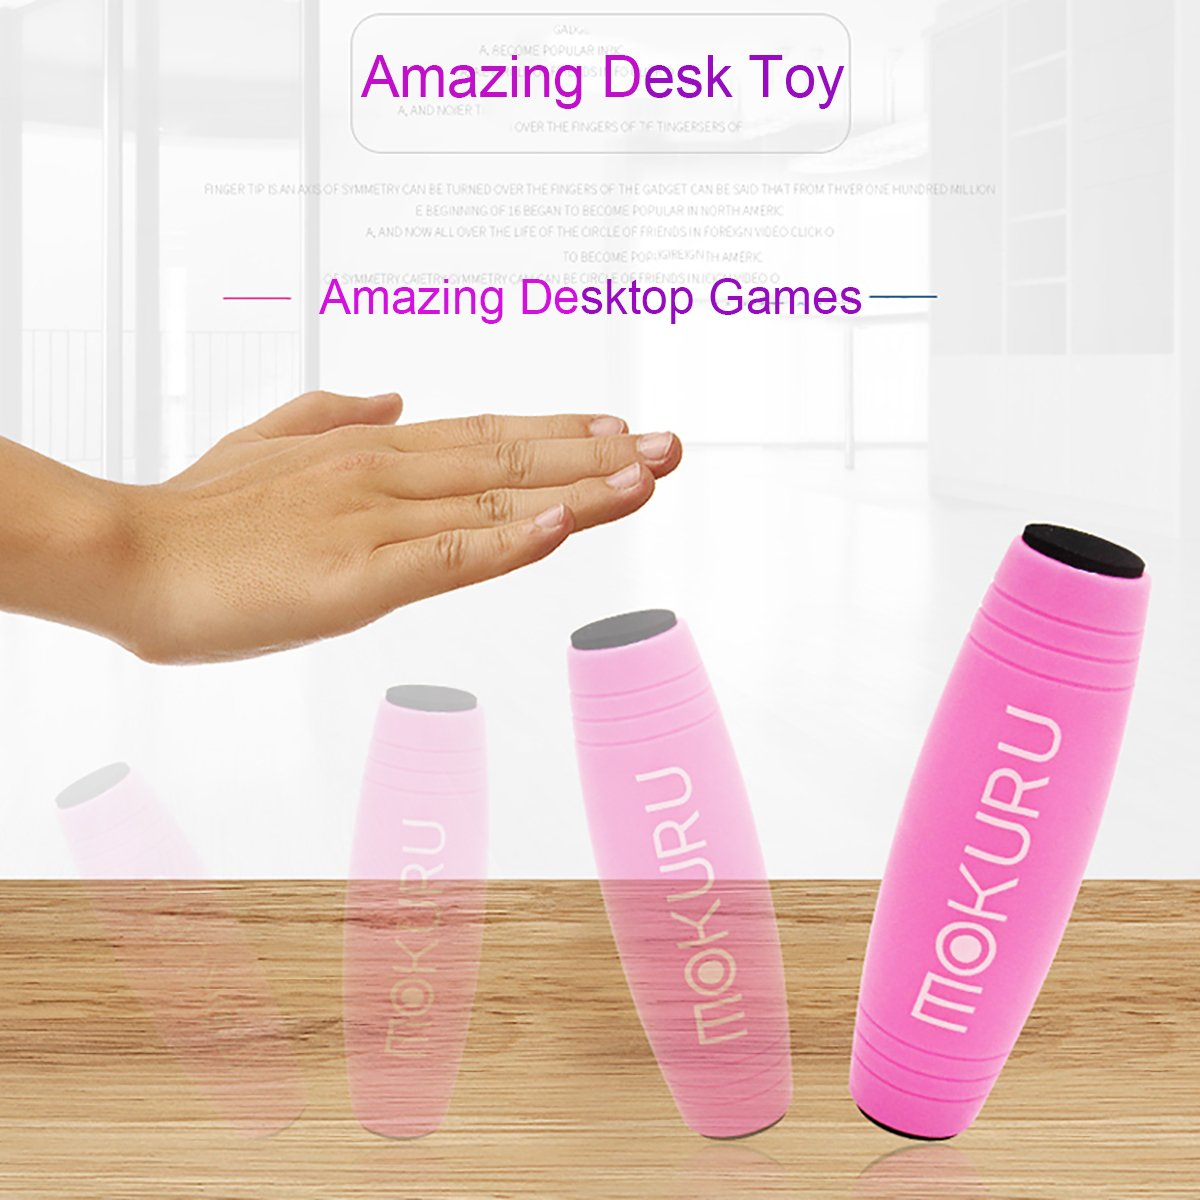 Amazing Desk Toy Cocoapa Mokuru, Exquisite and Compact Plastic Rolling Stick Toy Easy to Flip Roll, Anxiety Release for Office Home Party Class Bar (Yellow + LED)